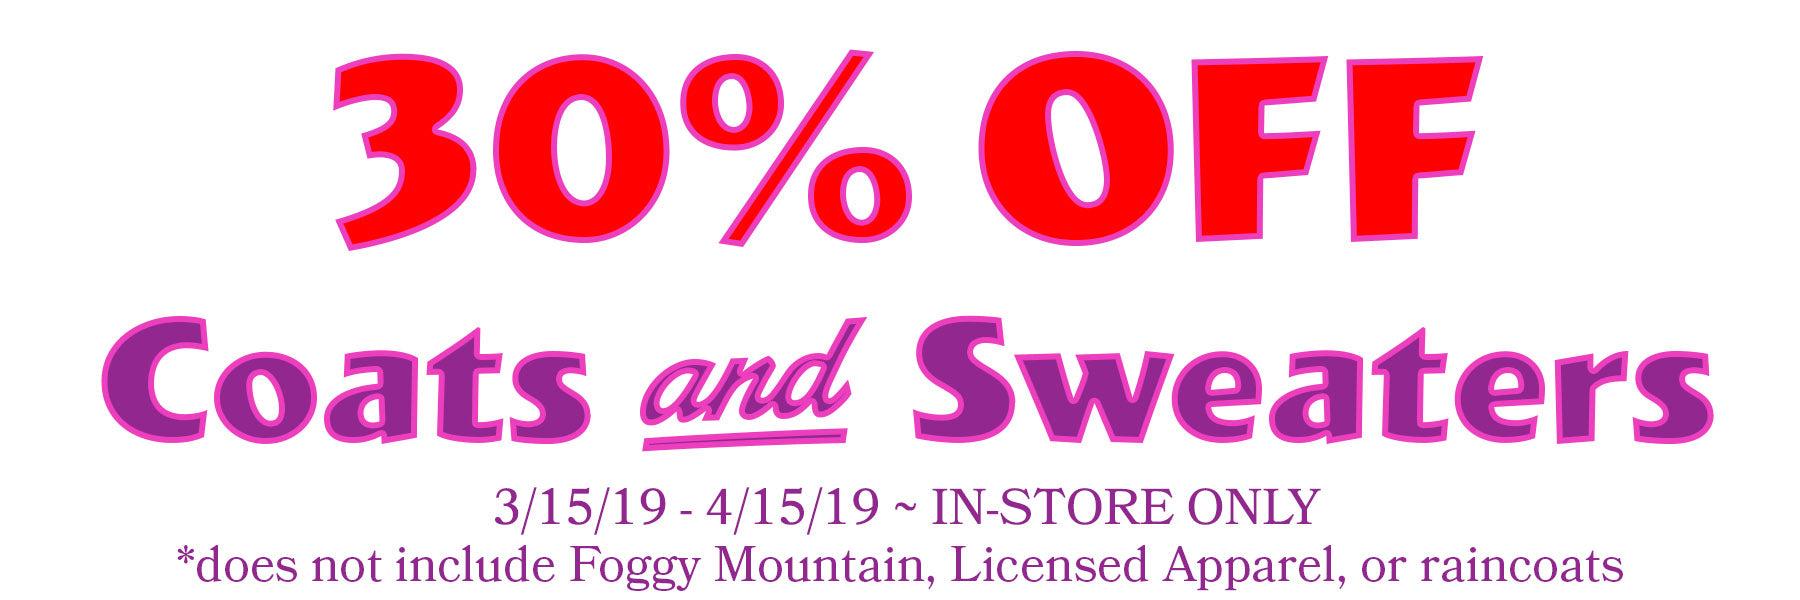 30% off Coats and Sweaters - 3/15 through 4/15, In store only